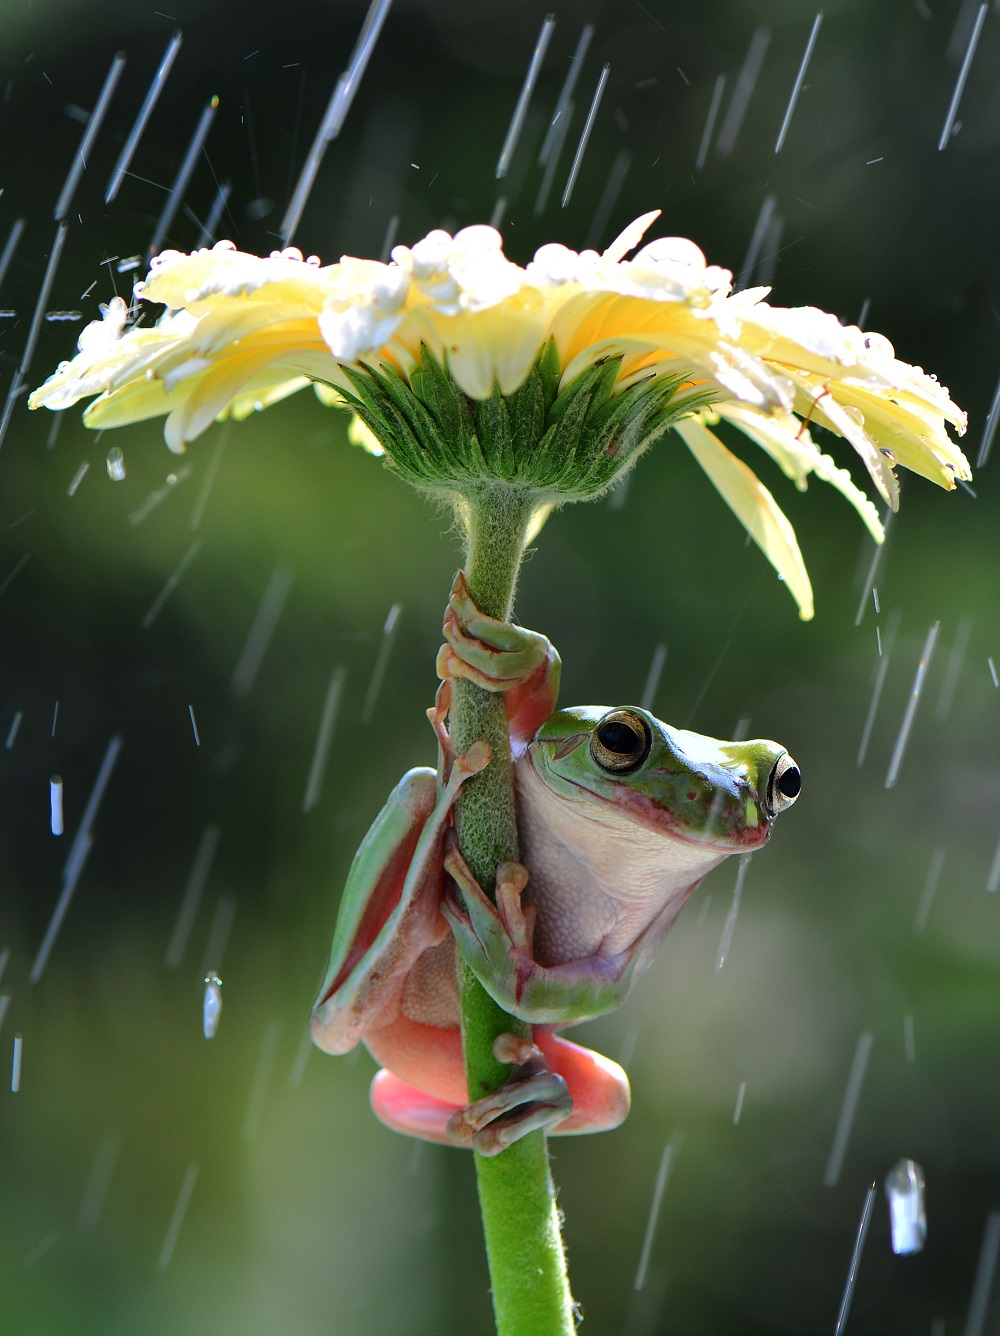 "Mandatory Credit: Photo by Ajar Setiadi/Solent News/REX Shutterstock (4794095a) Frog sheltering from the rain under a flower Frogs shelter under flowers from the rain, Jakarta, Indonesia - May 2015 *Full story: http://www.rexfeatures.com/nanolink/qfrm A pair of quick-thinking frogs try to keep dry while it showers by holding a flower over their head like an umbrella. The amphibians are so determined to keep dry they manage to climb up the gerbera stalks so their bodies are underneath the petals. Photographer Ajar Setiadi captured the moment two dumpy tree frogs climbed the flowers in his back garden in Jakarta, Indonesia. The 47-year-old said: ""I was playing with my frogs at the time and then it started showering quite a bit. ""The frogs managed to jump from one flower to another and hold it above their heads so that they did not get wet""."